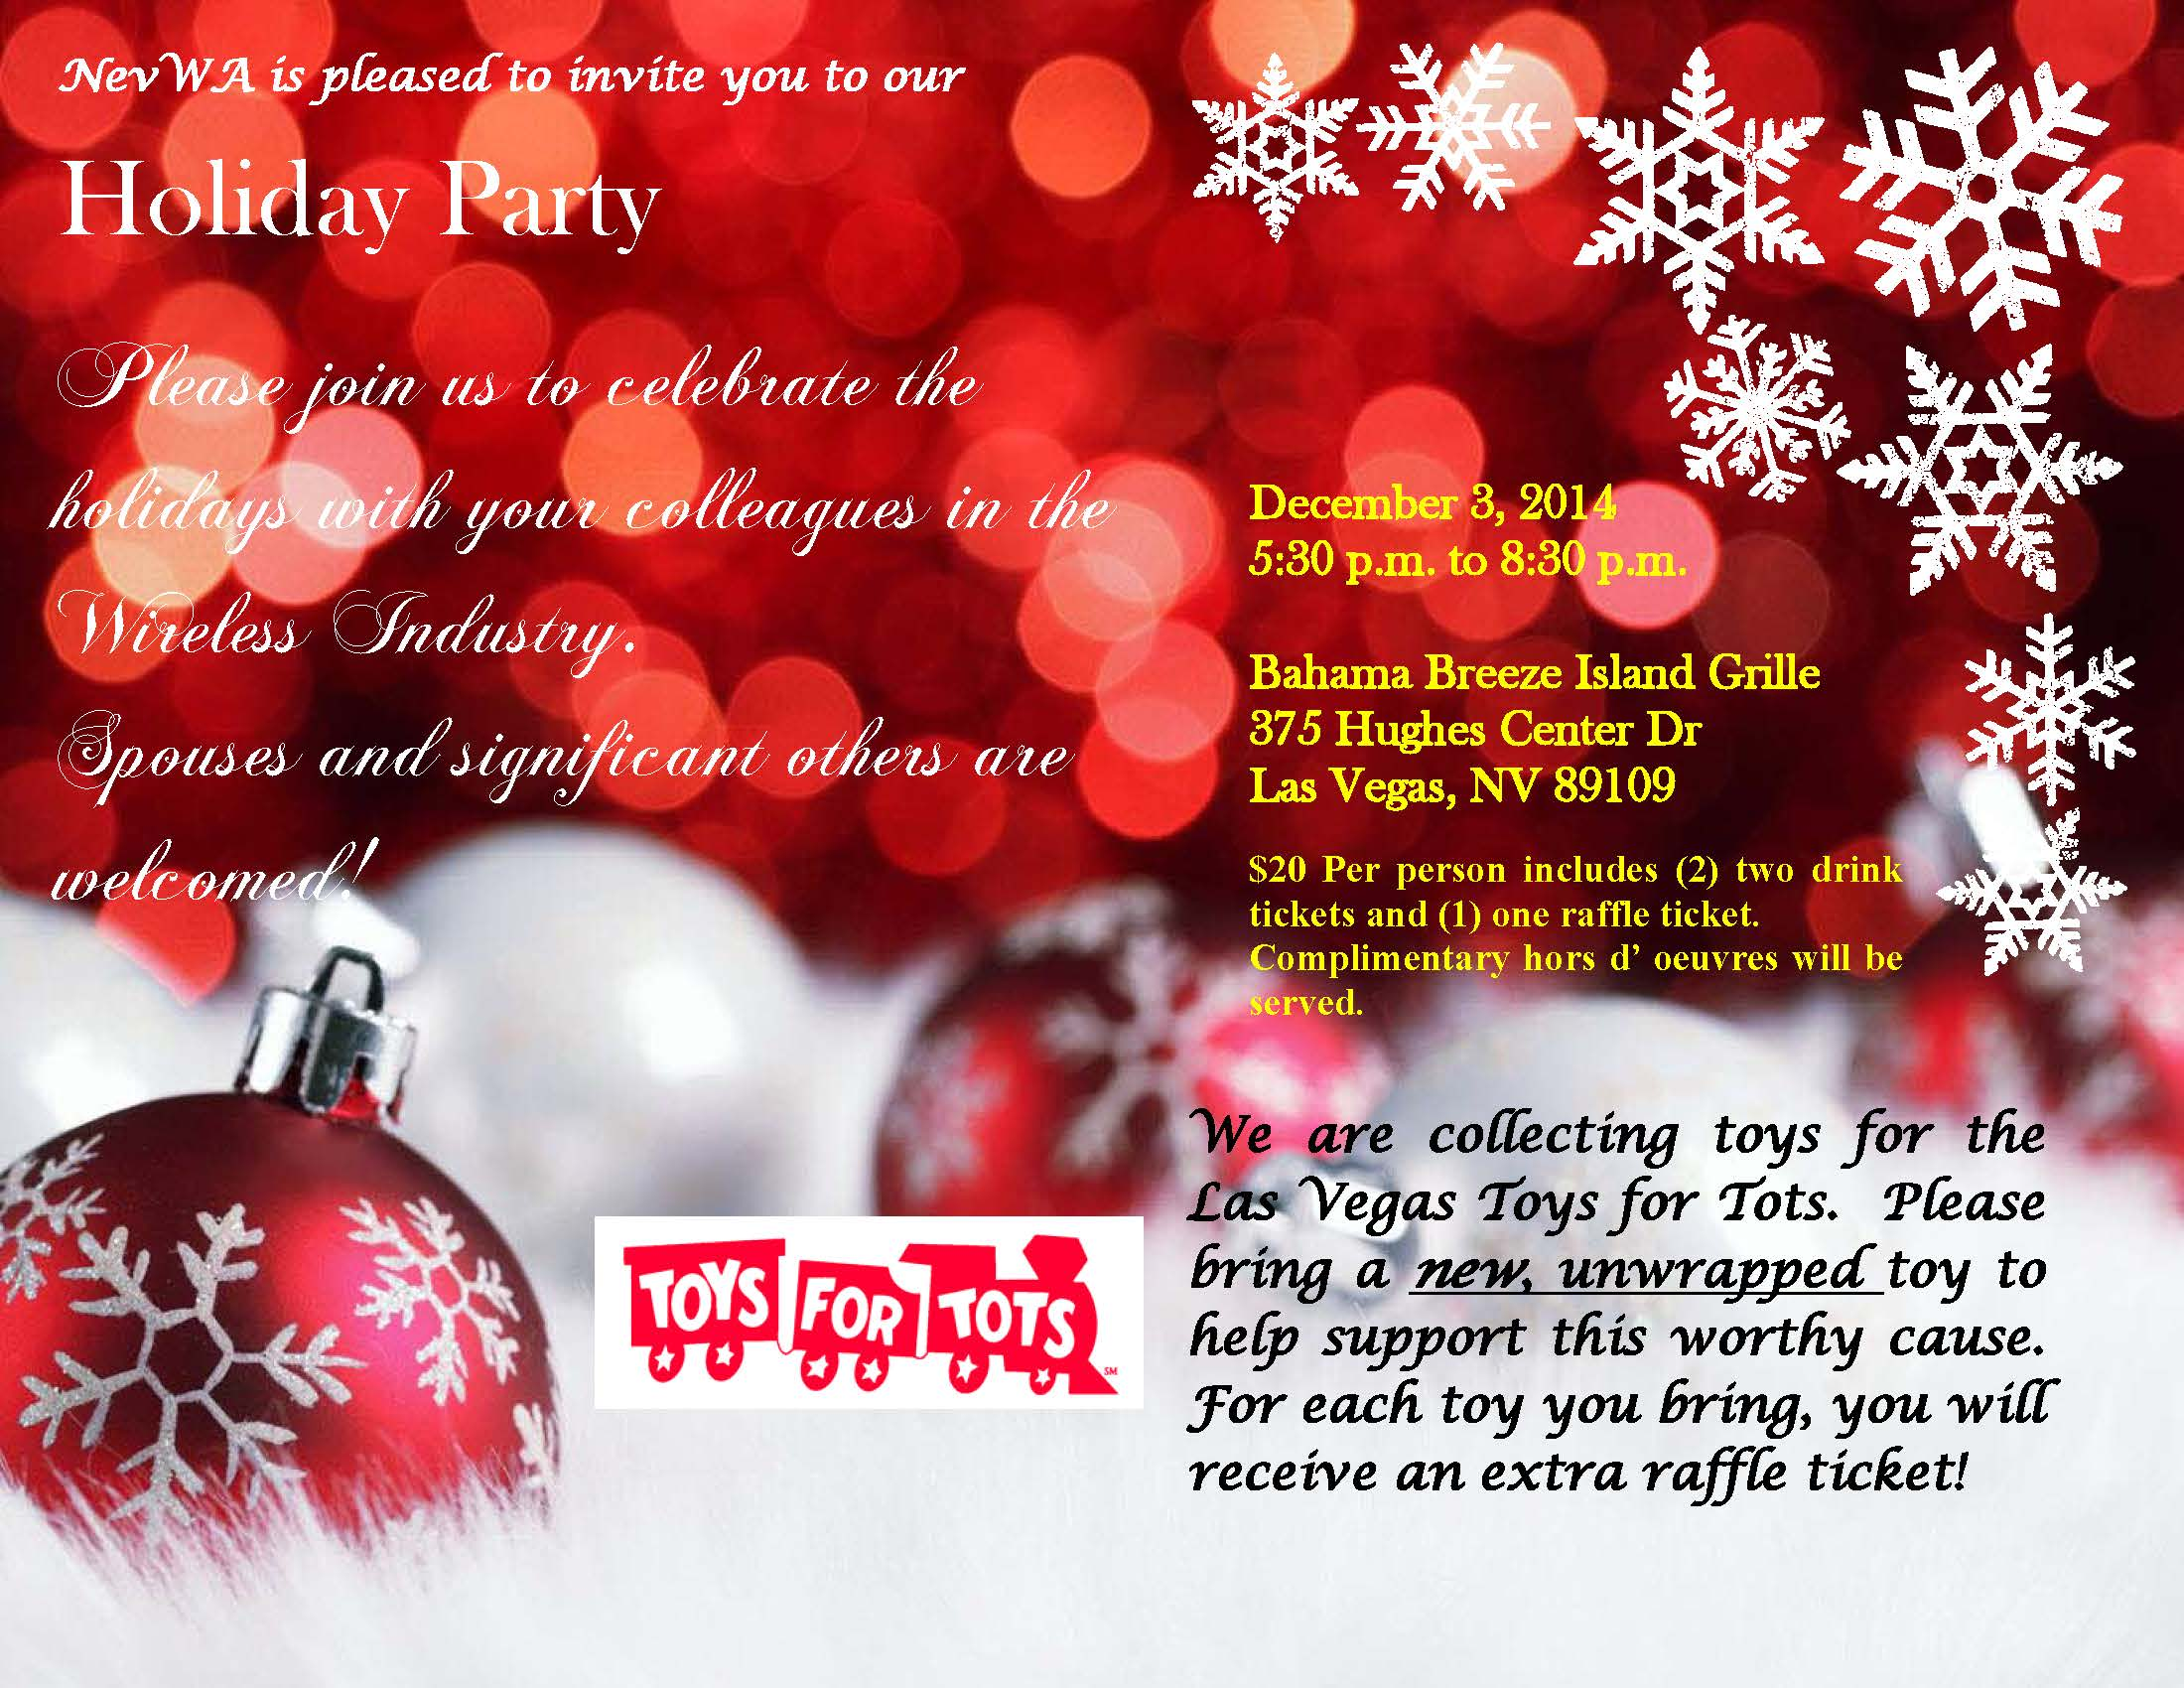 Holiday Party Invite 2014